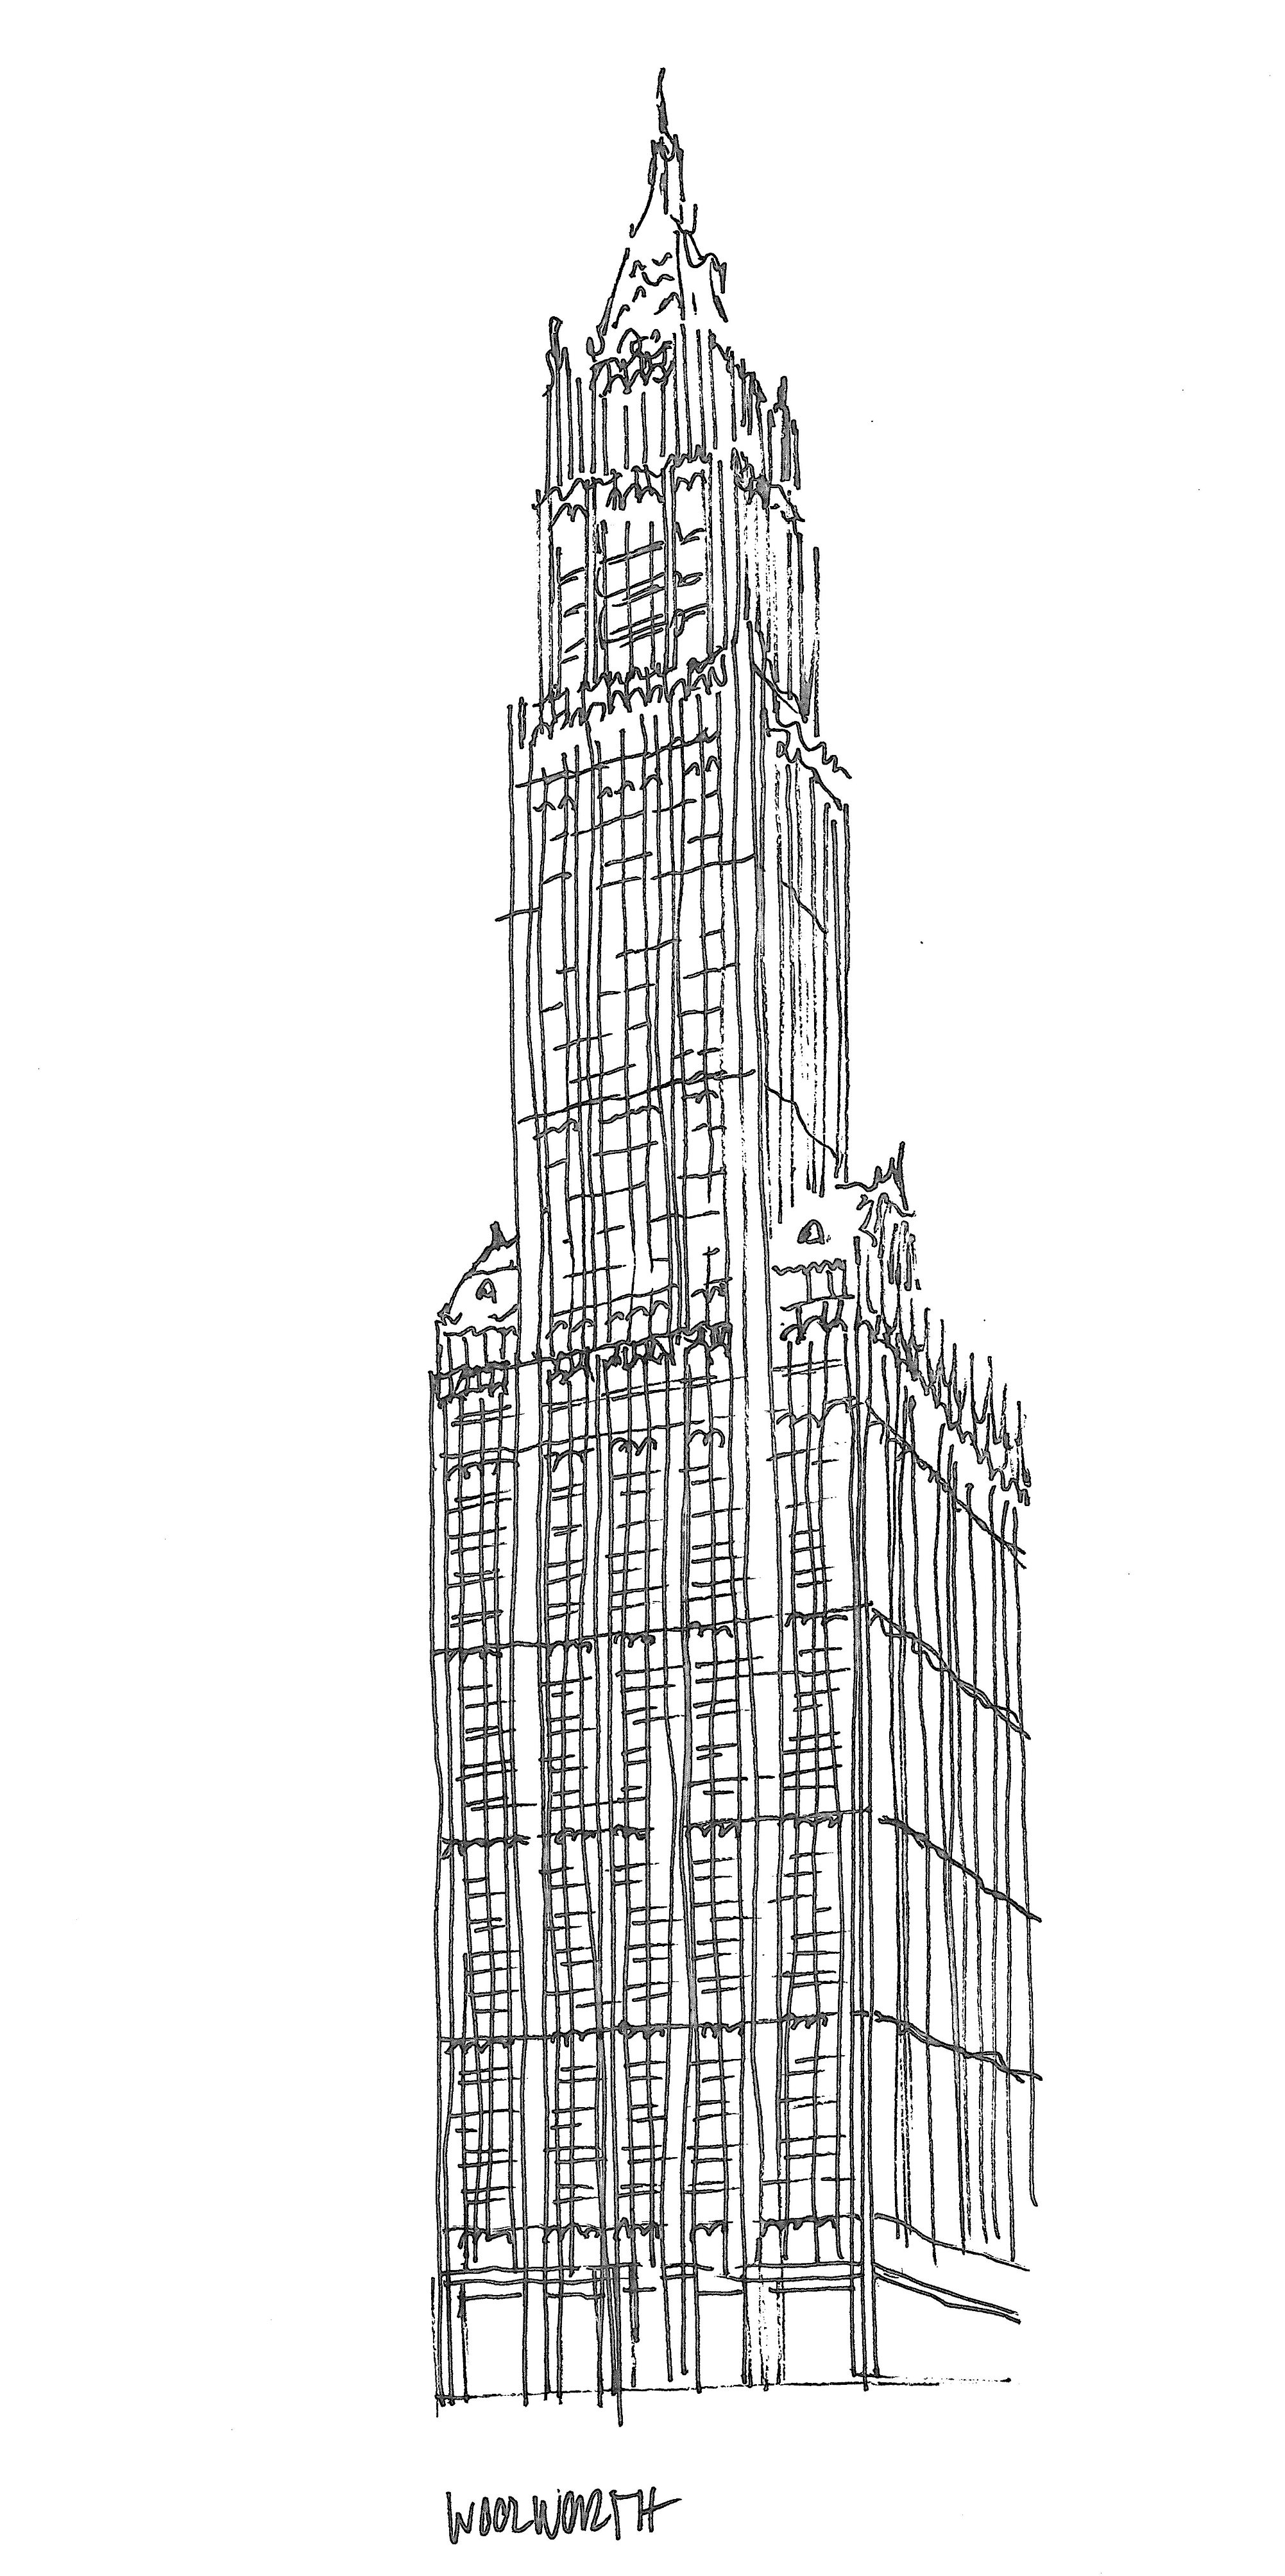 First Leiter & Woolworth Building, sketched by Heidi Mergl